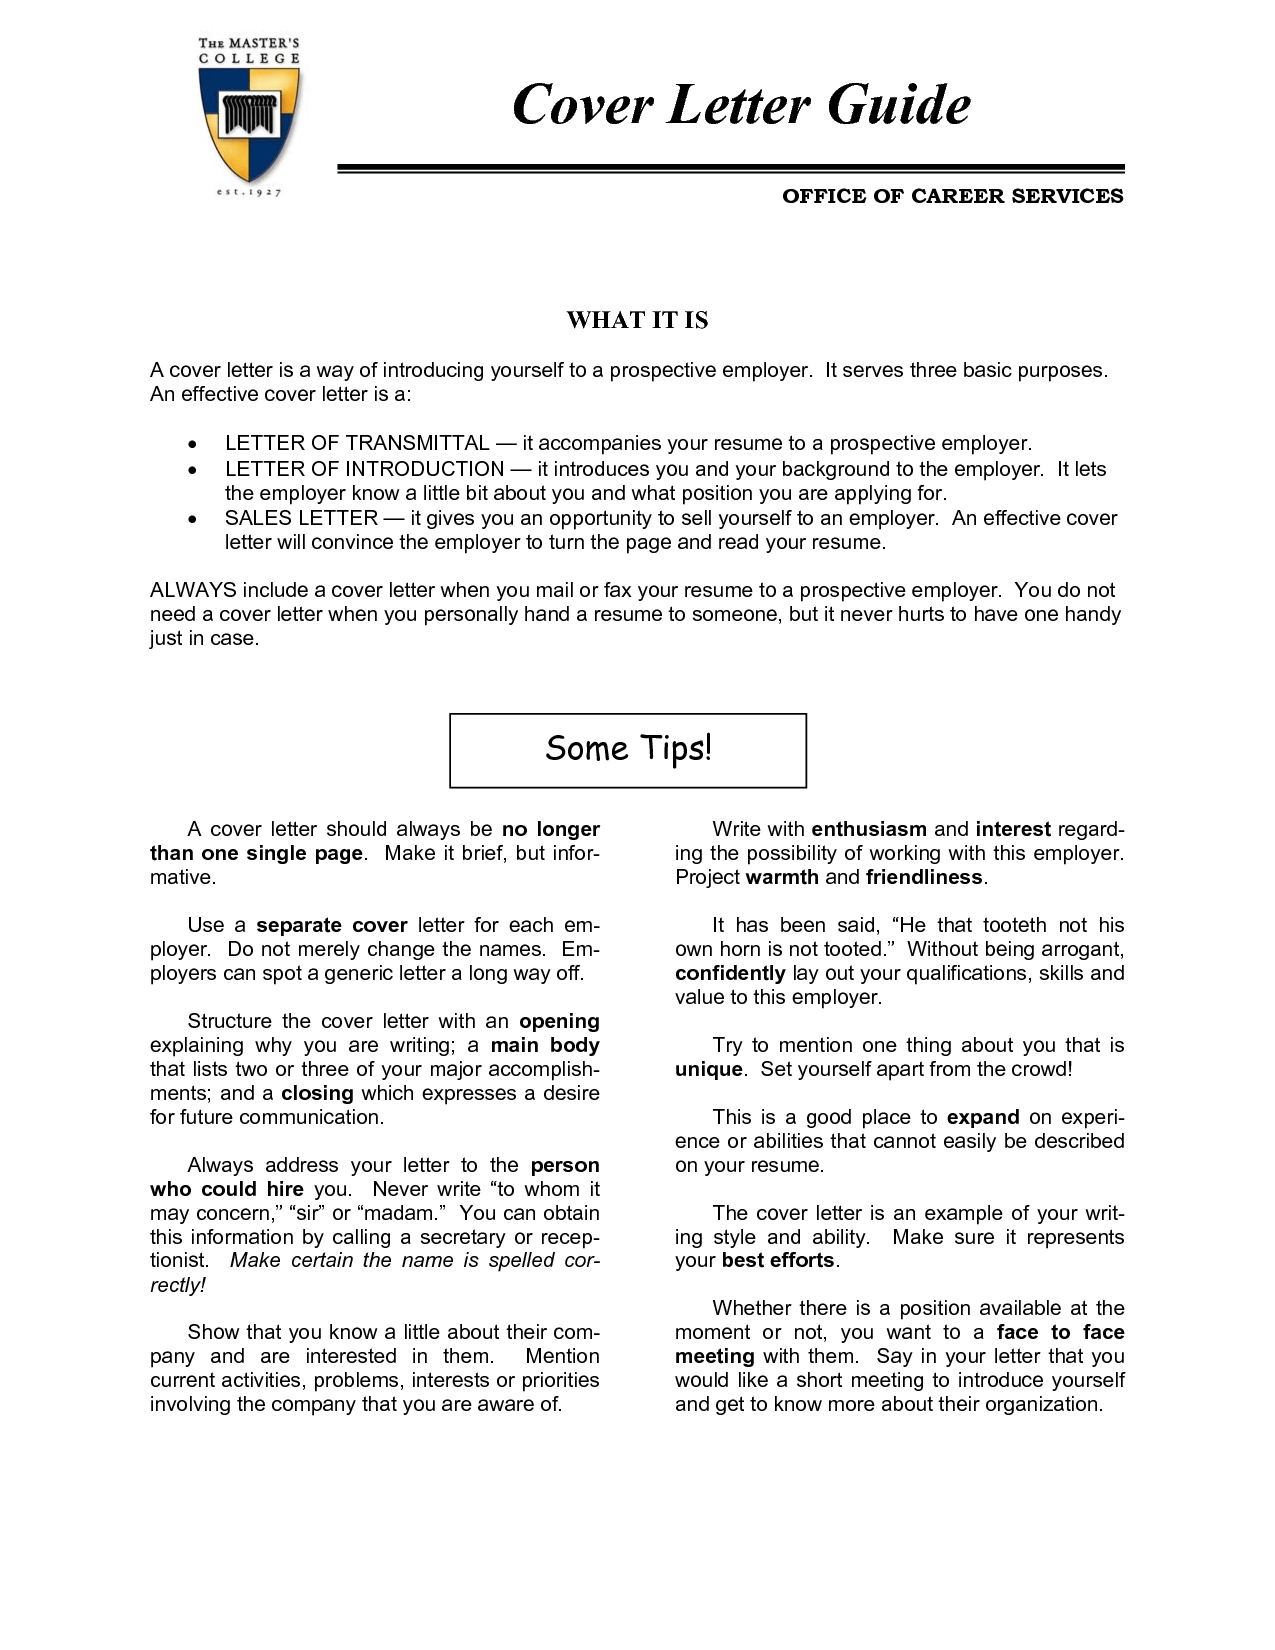 Transmittal Cover Letter Template Samples